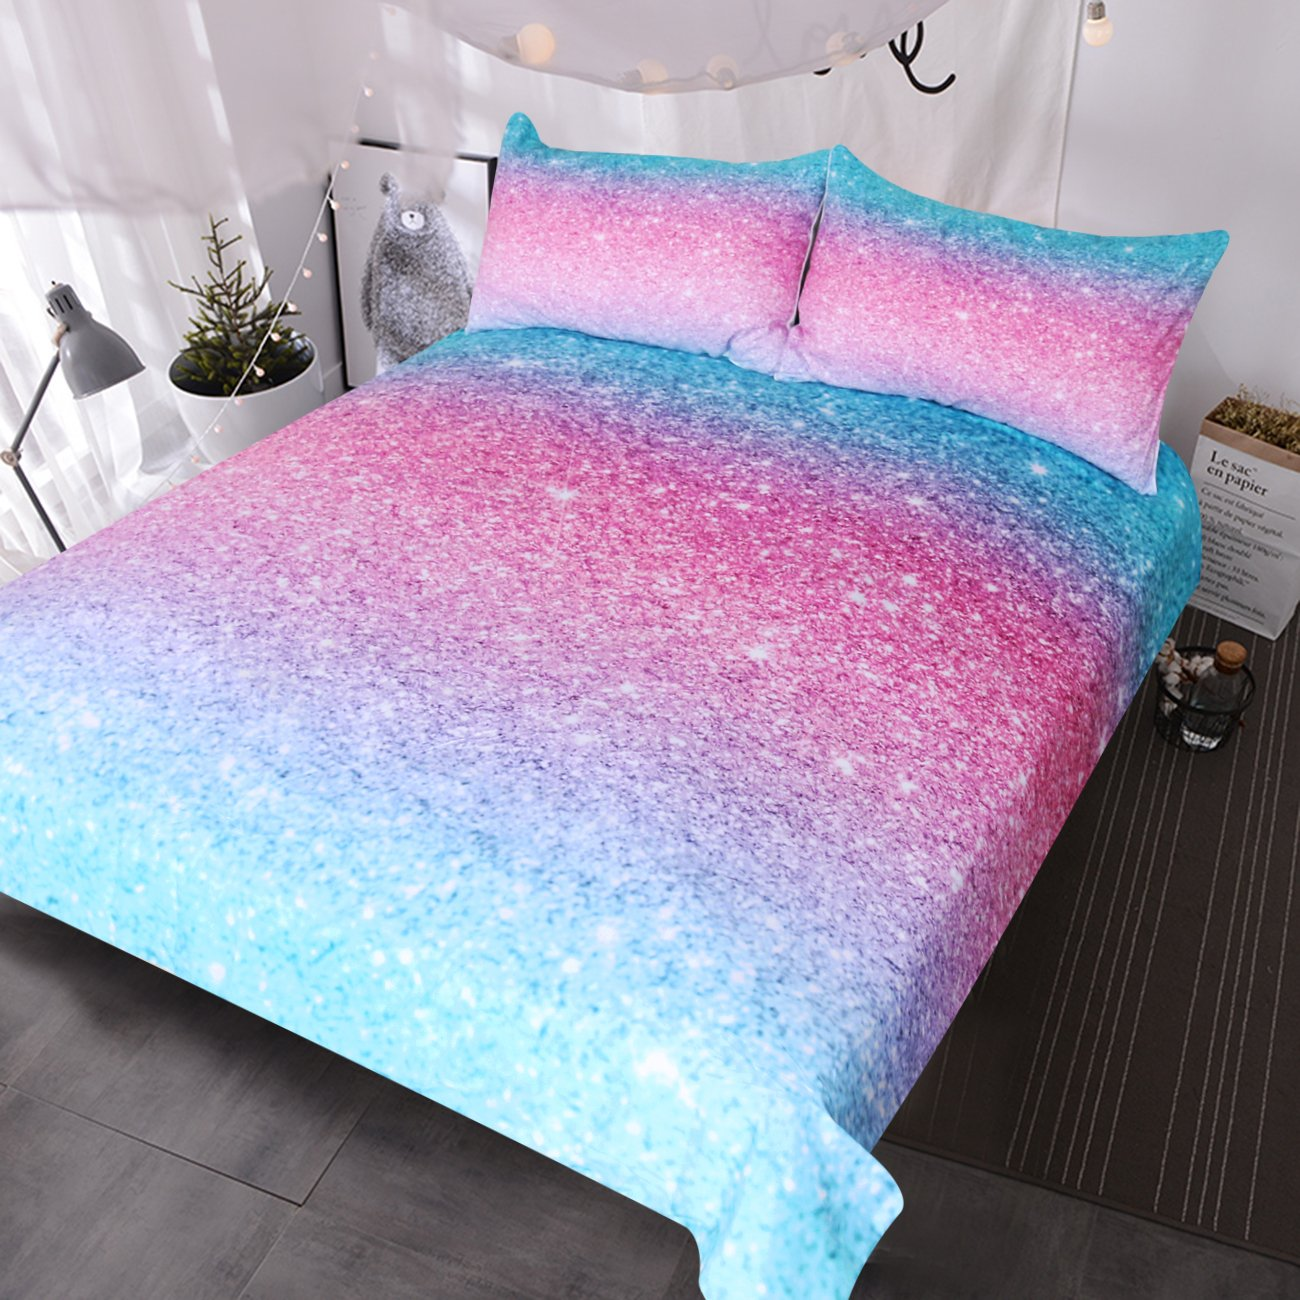 BlessLiving Colorful Glitter Bedding Girly Turquoise Blue Pink and Purple Pastel Colors Duvet Cover 3 Piece Trendy Bed Spreads (Twin) by BlessLiving